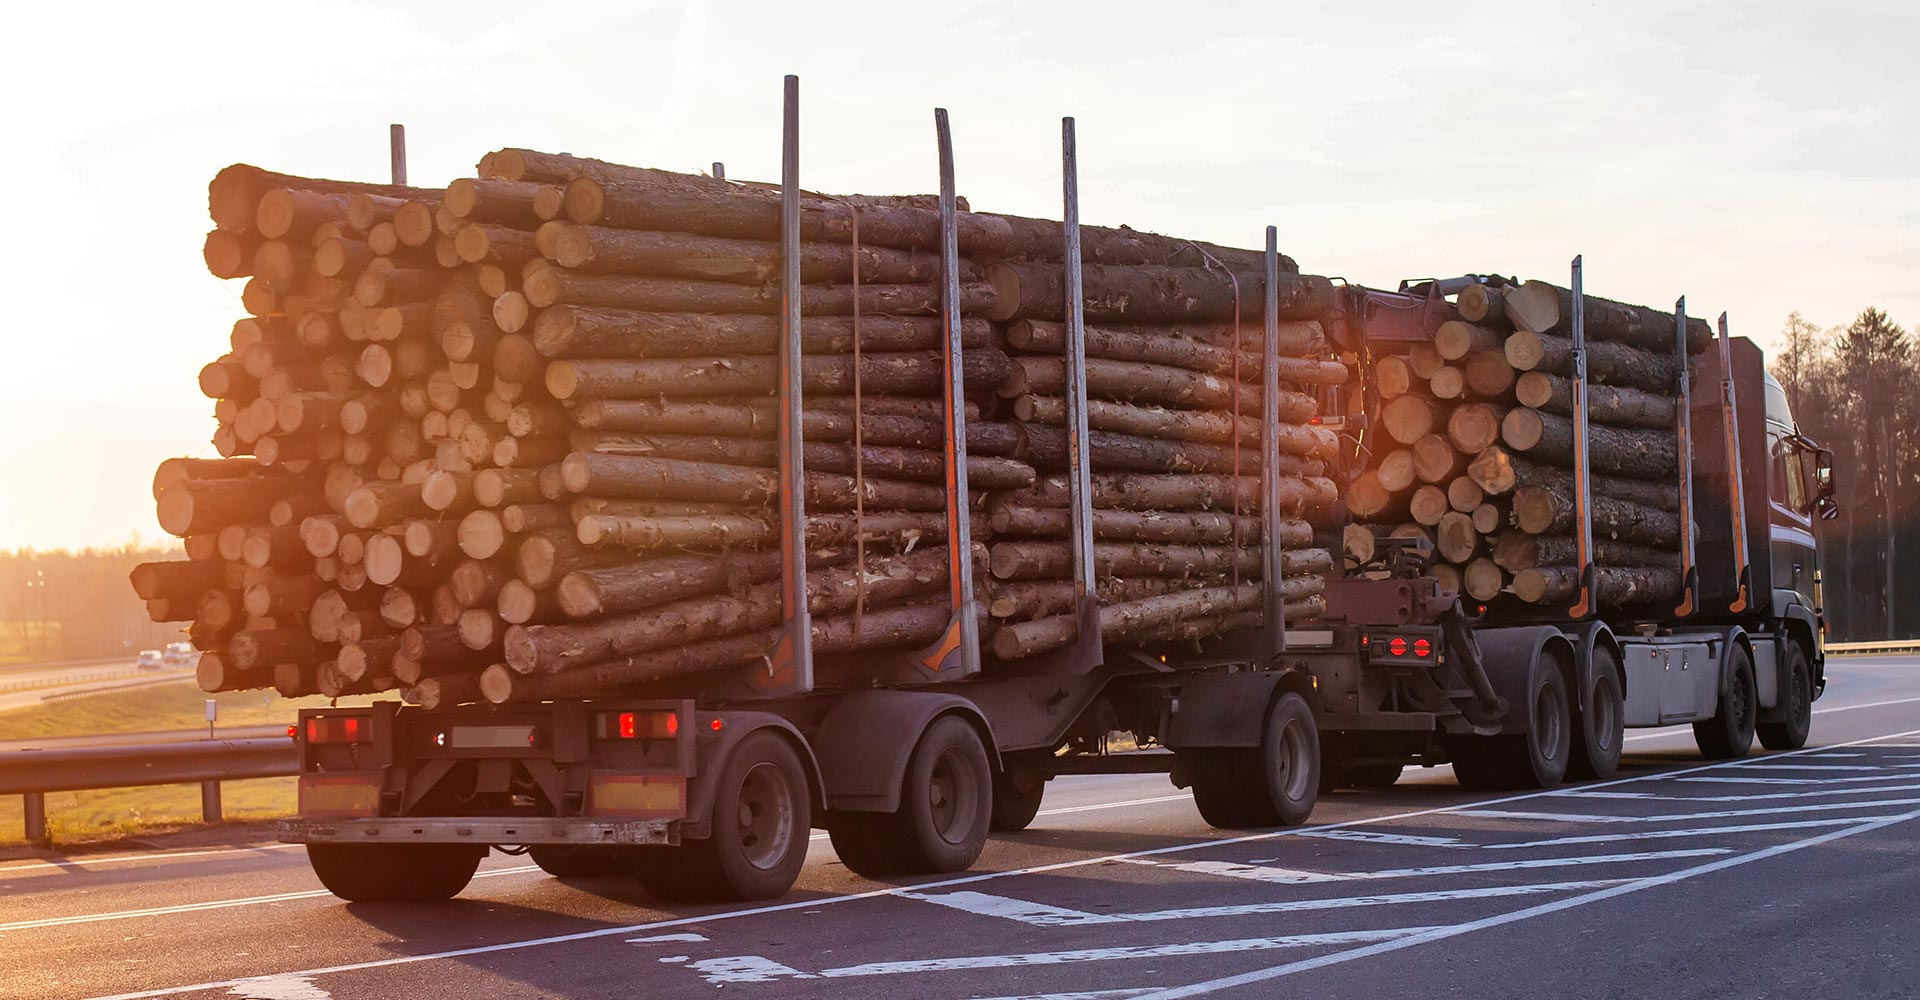 fully-loaded logging truck driving along the road